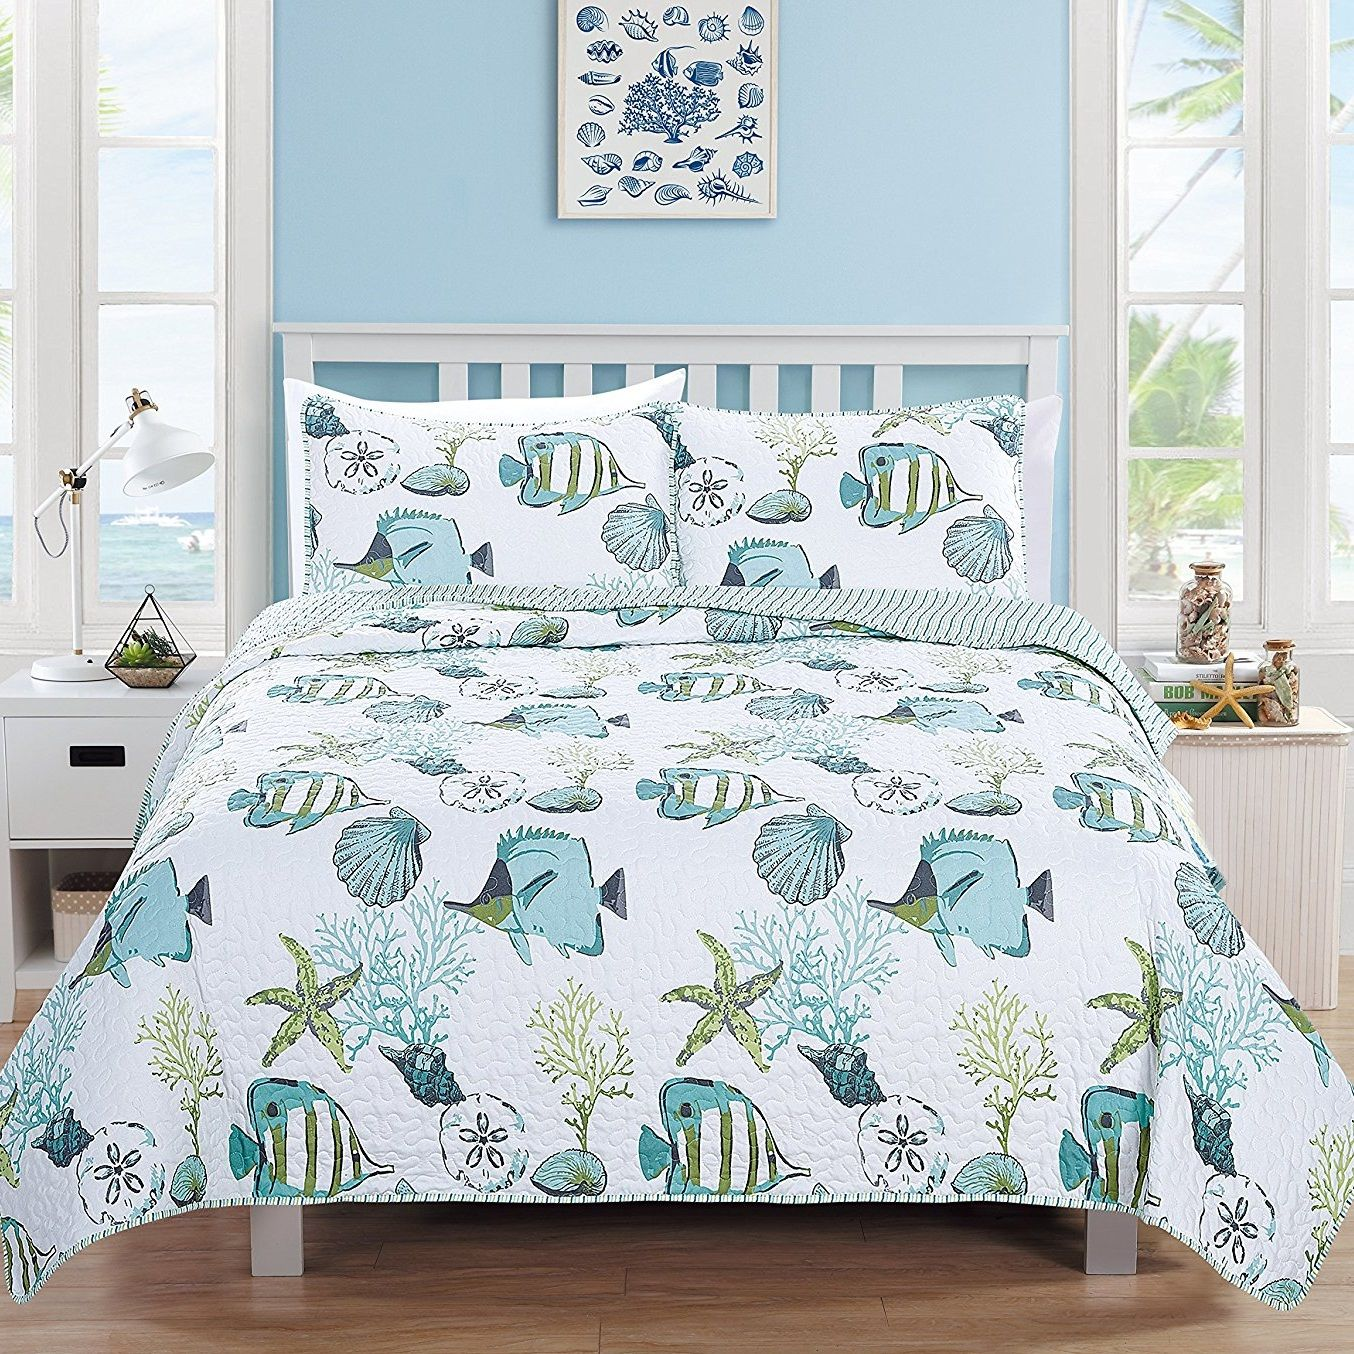 200 Coastal Bedding Sets And Beach Bedding Sets For 2020 Beach Bedding Sets Quilt Sets Bedding Sets